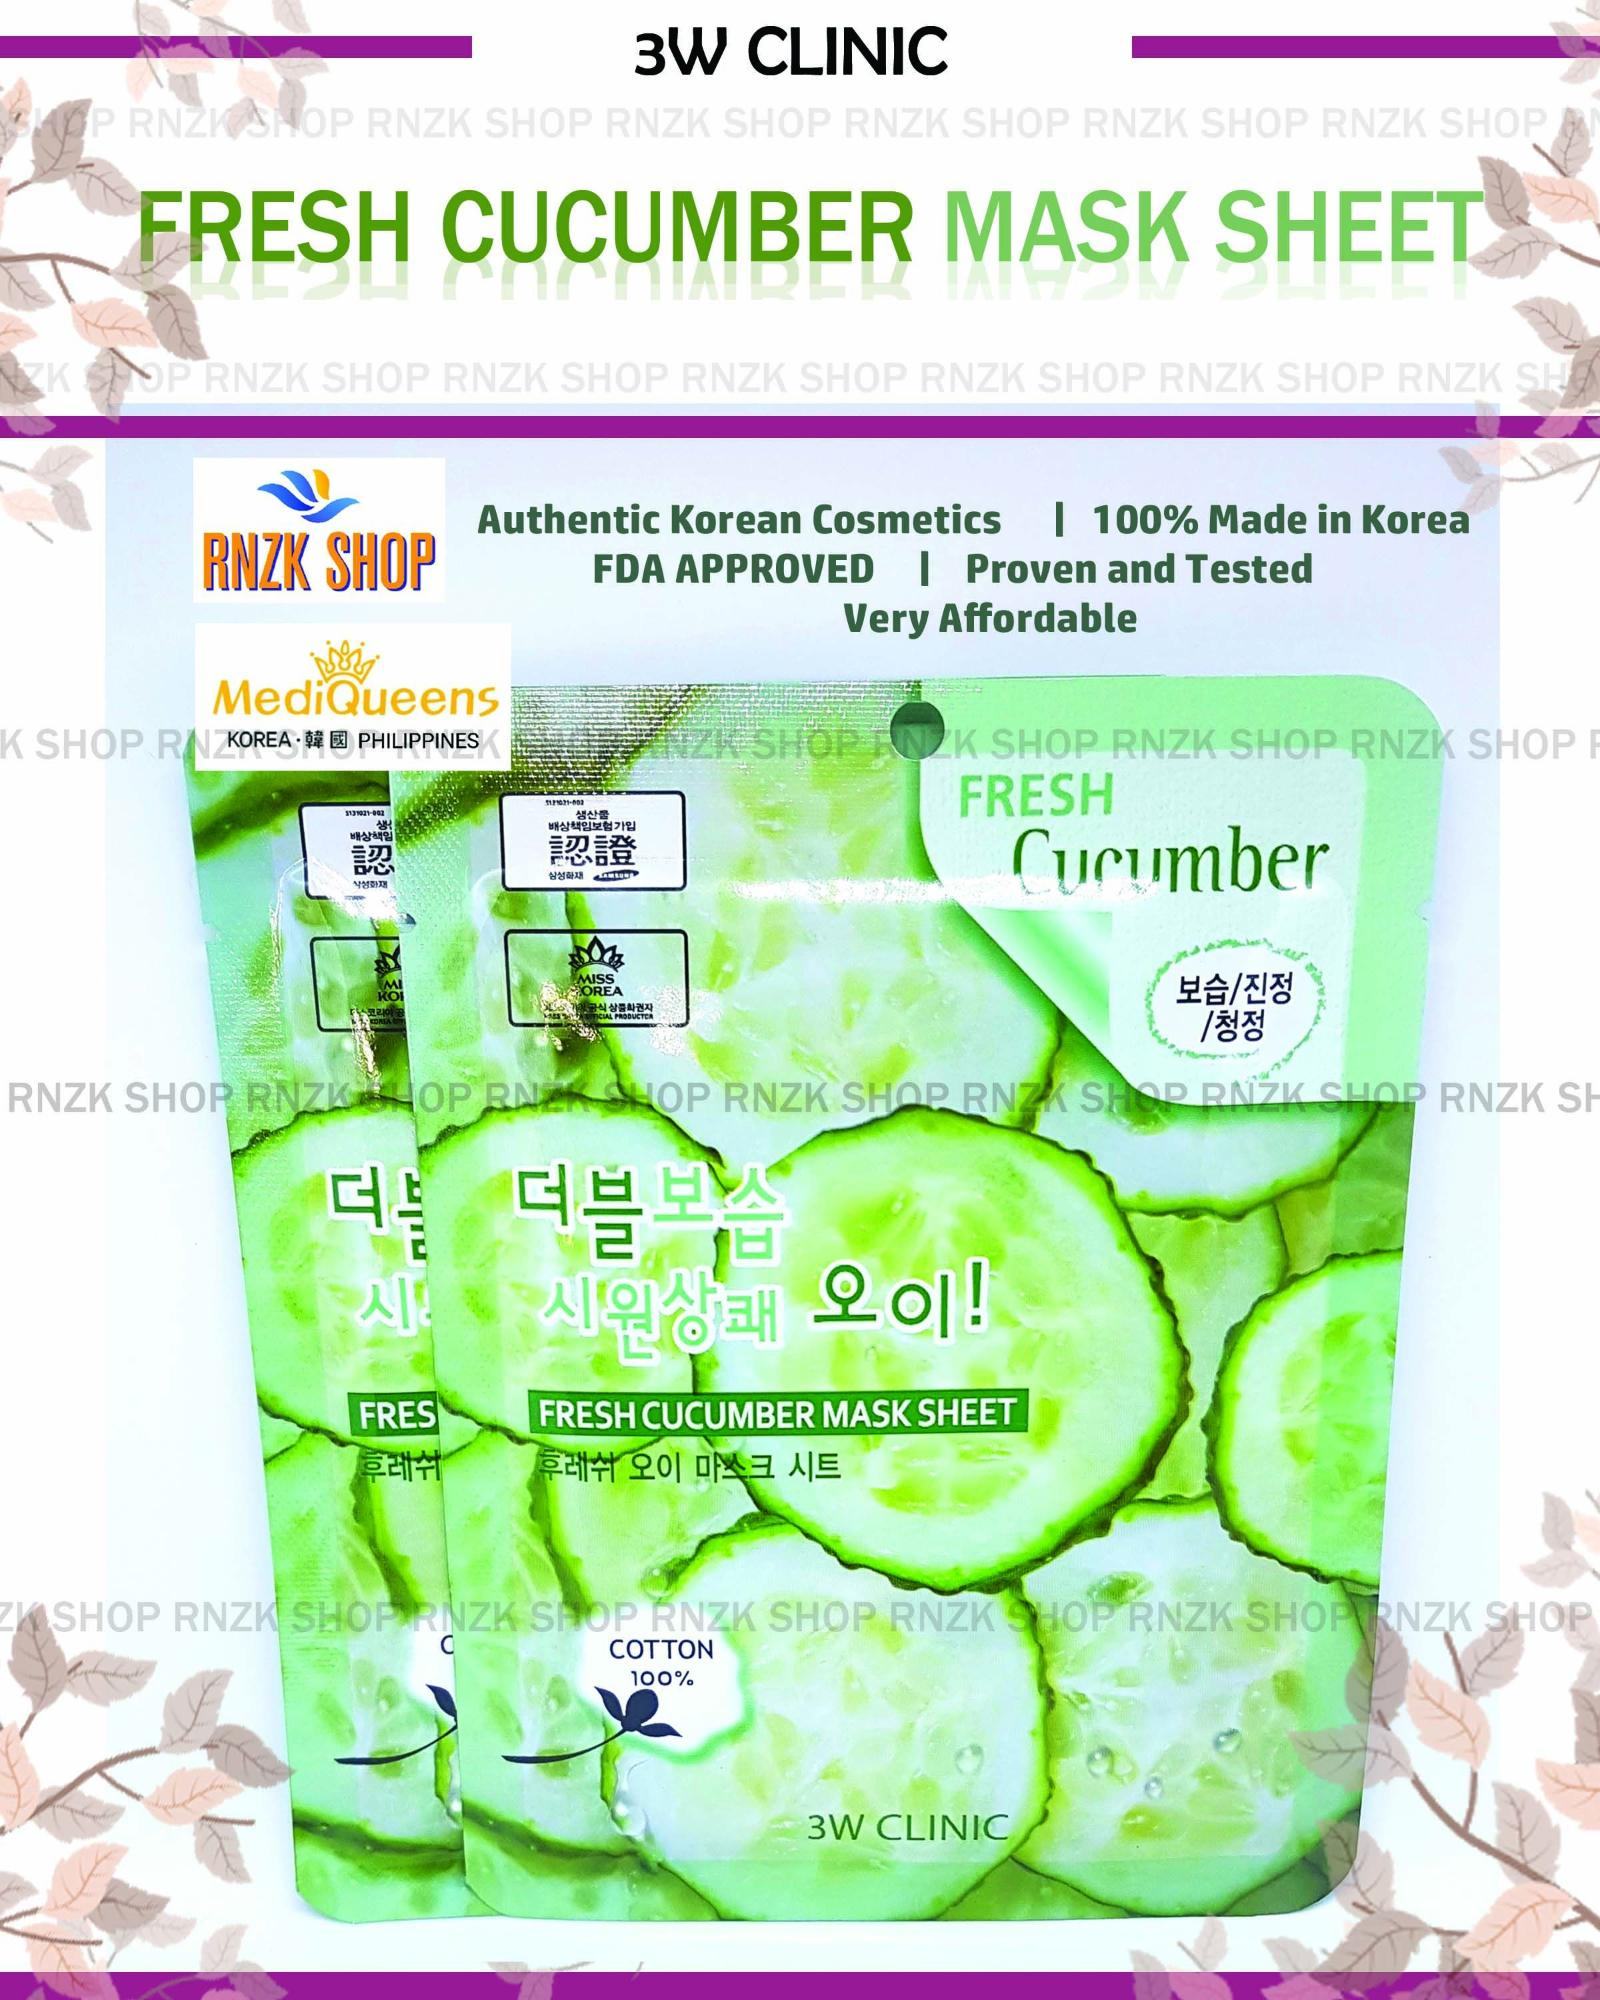 Sell Baroness Cucumber Mask Cheapest Best Quality Ph Store Rorec Sheet Olive Php 40